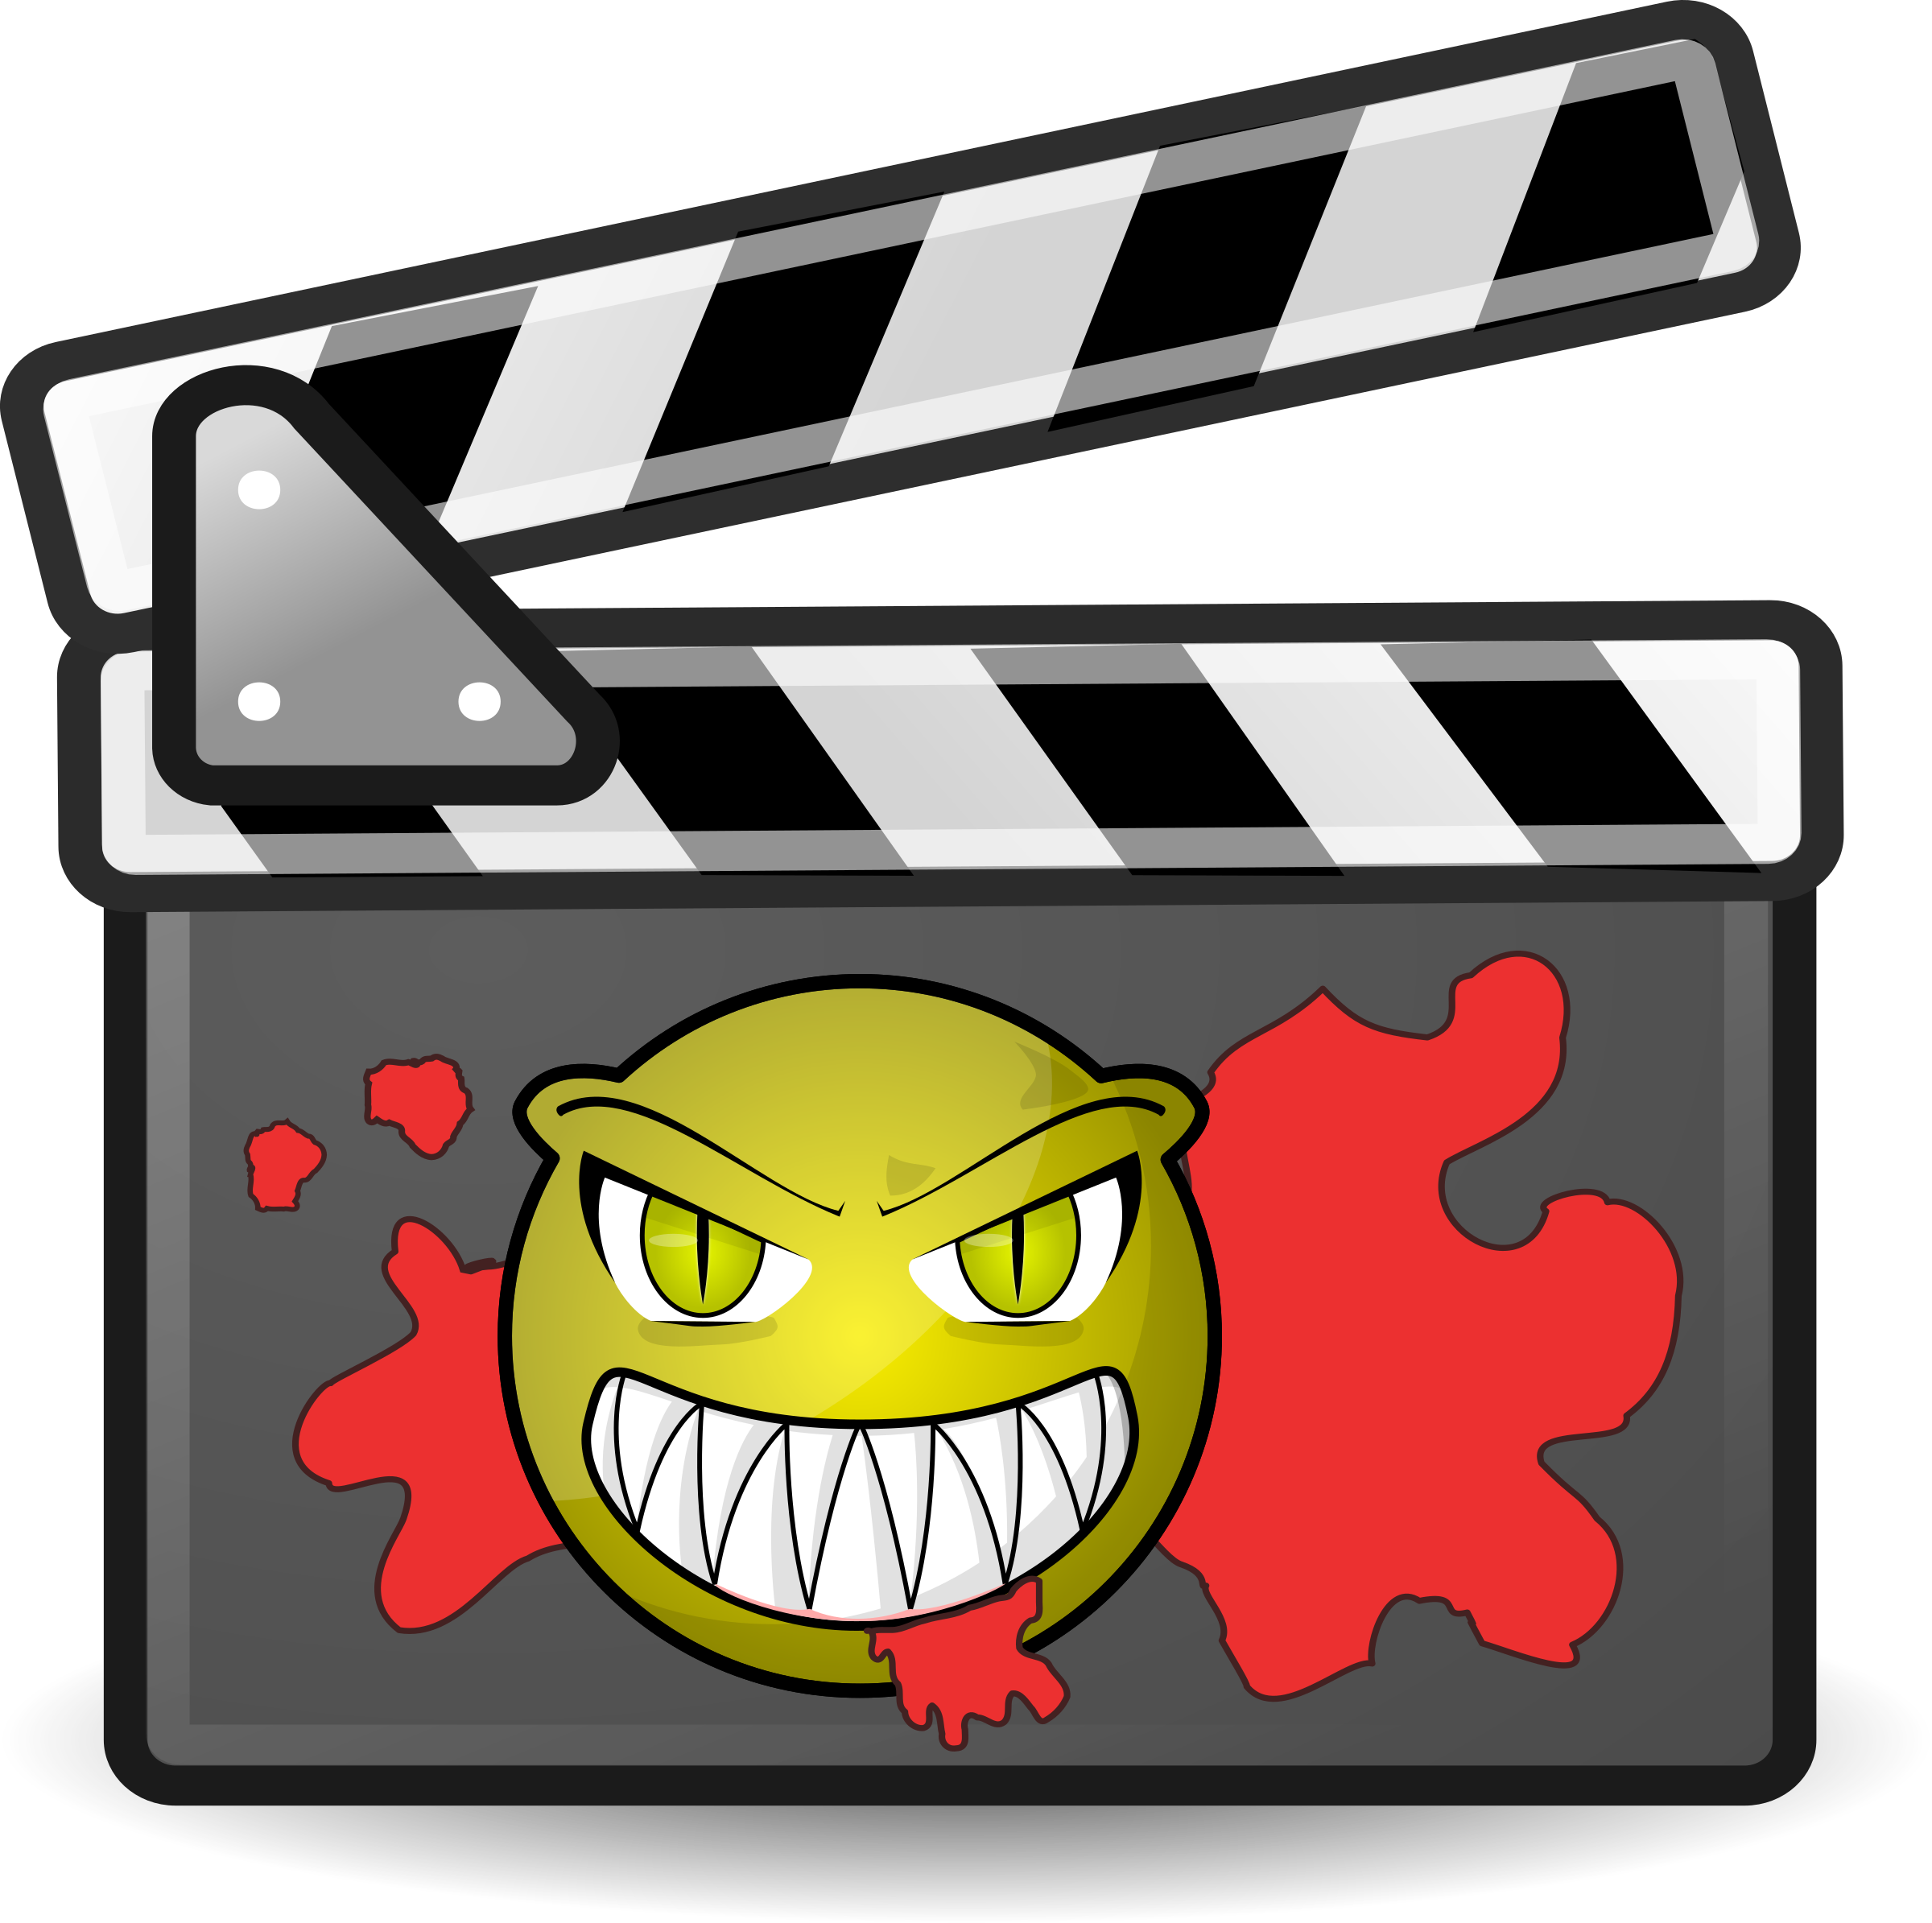 Movies clipart movie symbol, Movies movie symbol Transparent FREE.